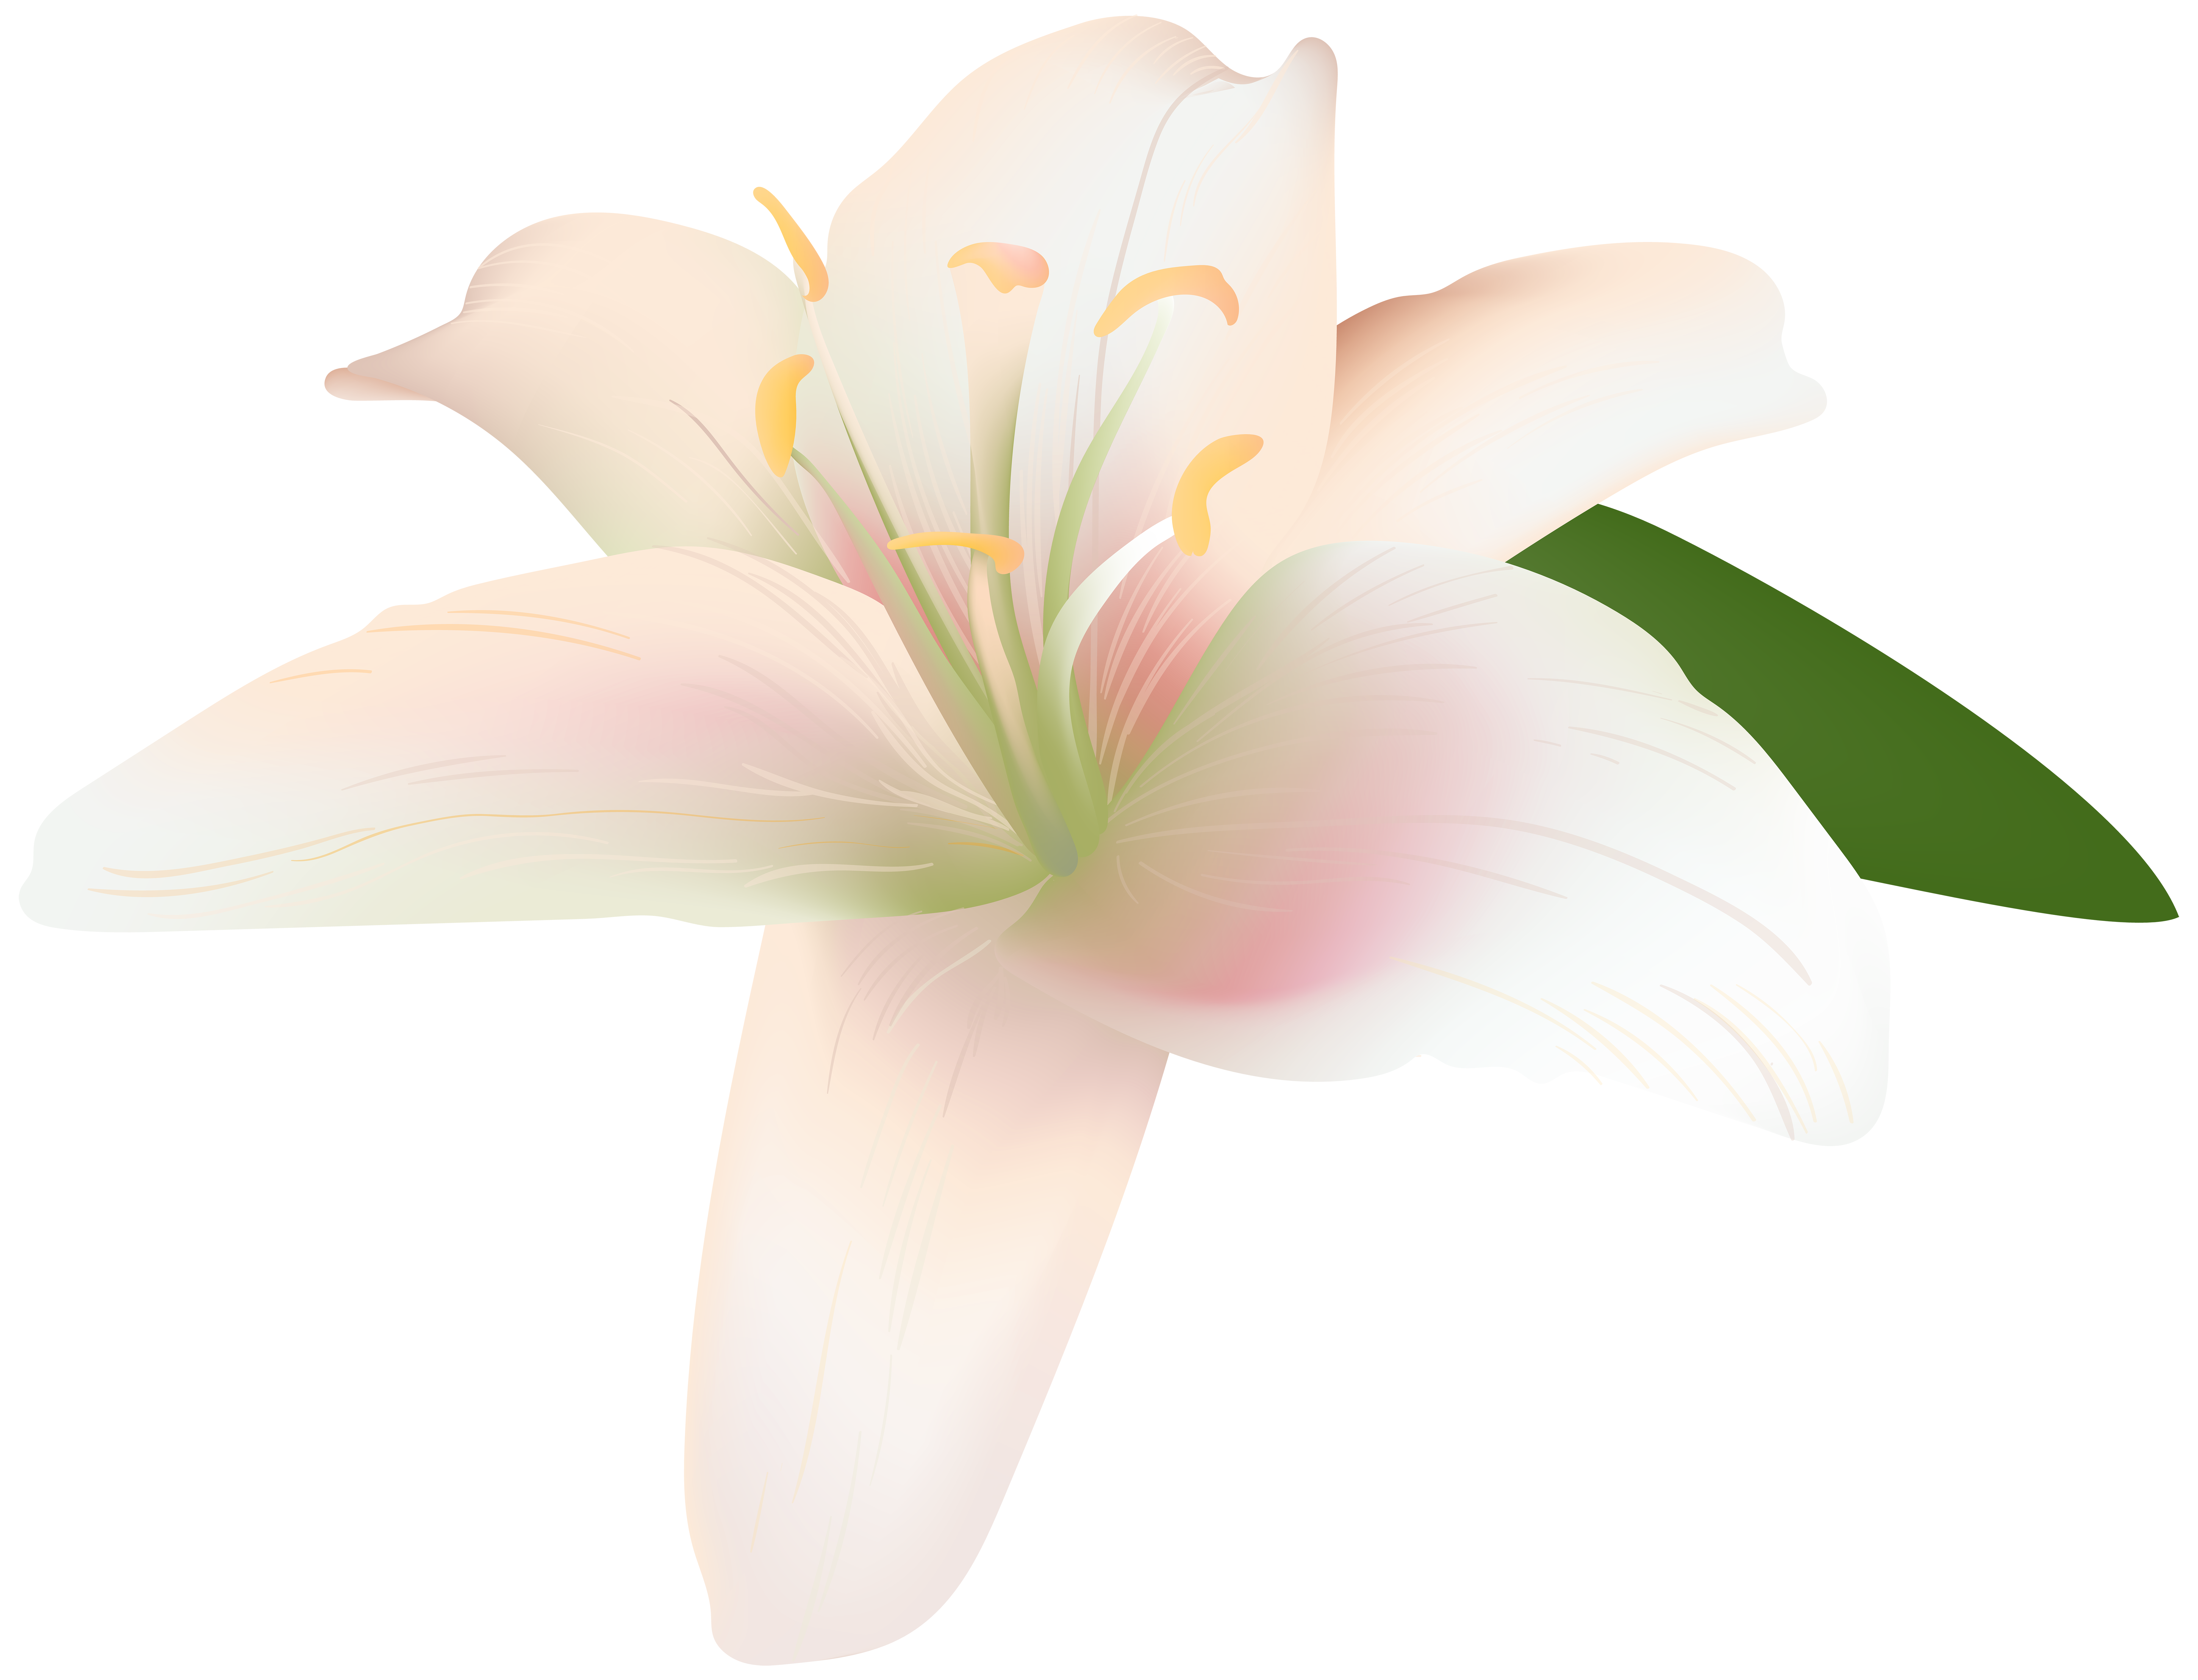 Star lily flower black and white clipart black and white library Lily Flower Transparent Clip Art Image | Gallery Yopriceville ... black and white library